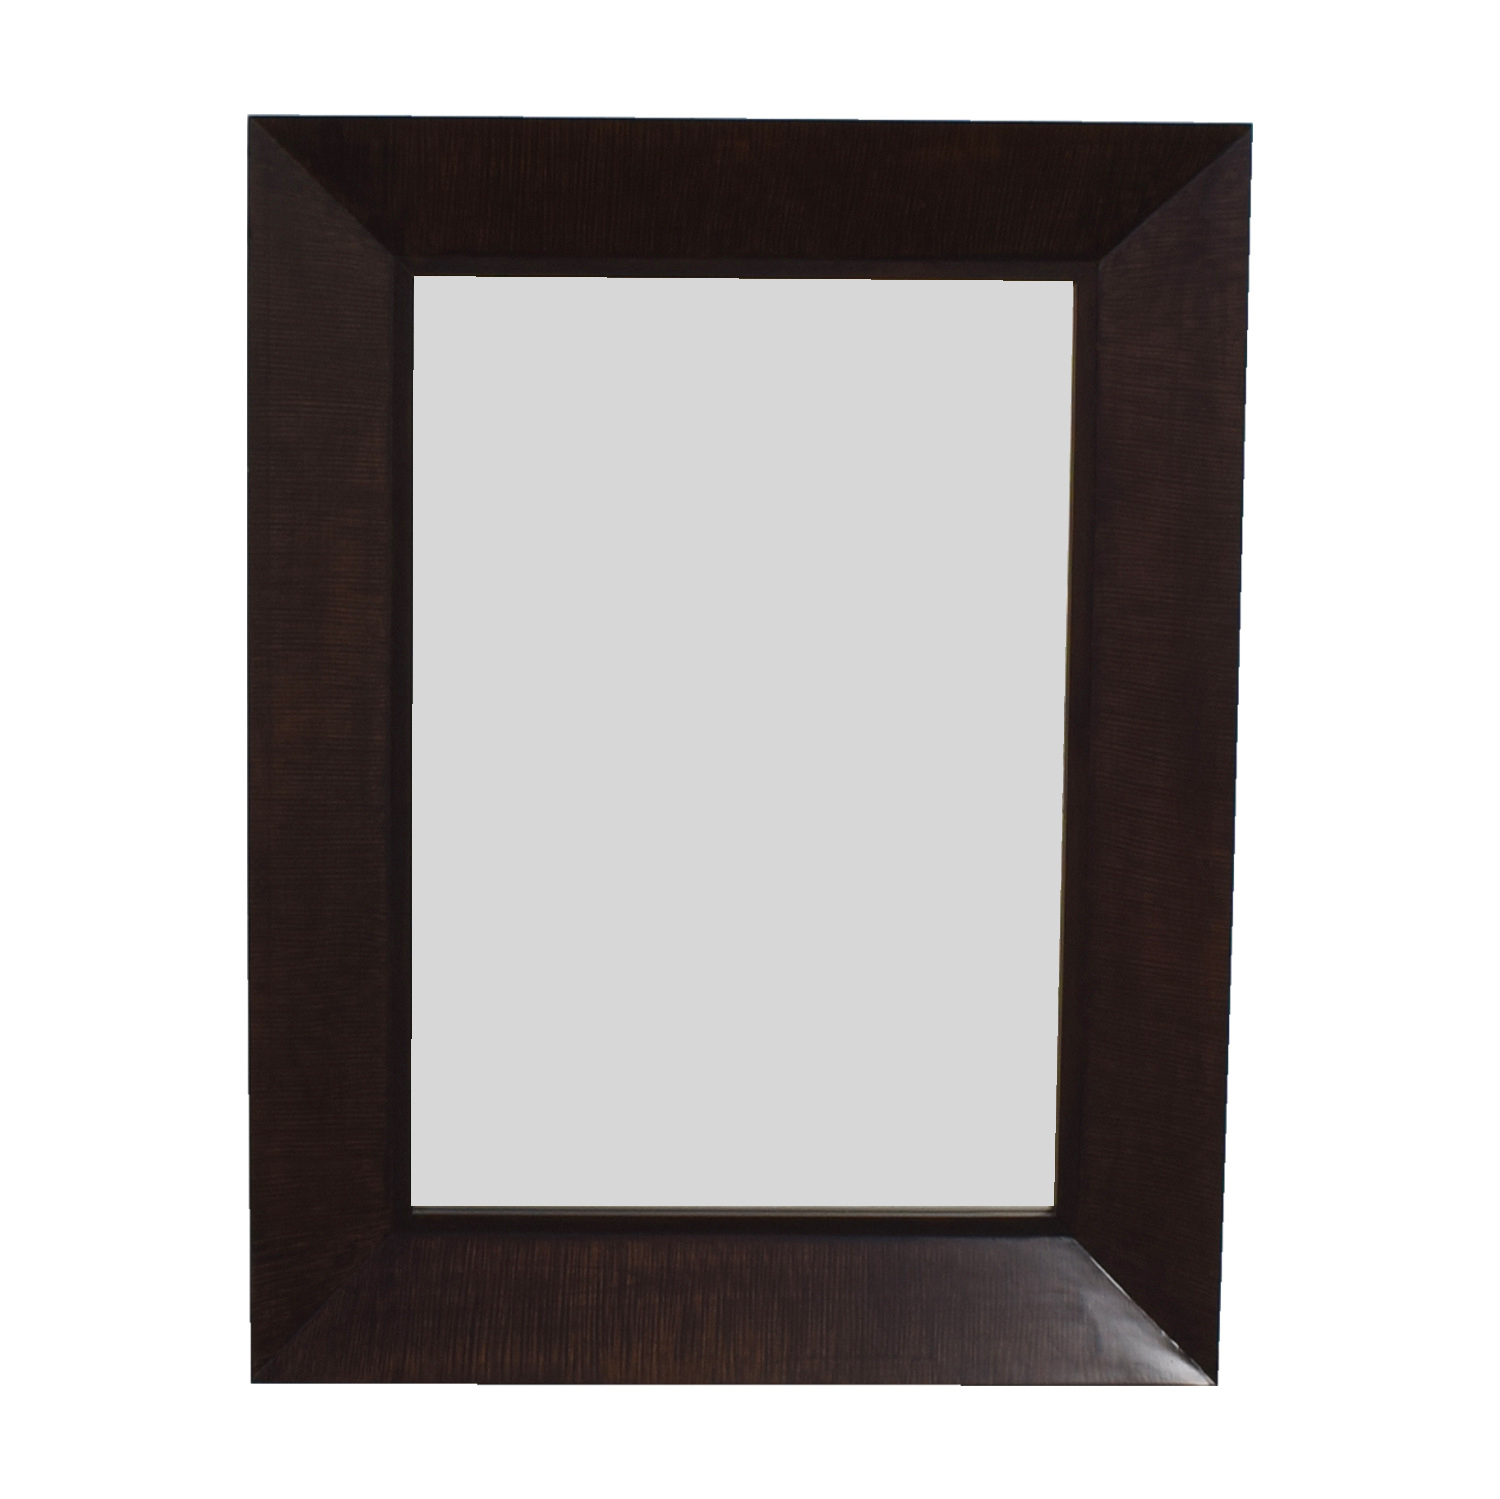 Kreiss Kreiss Wood Framed Mirror used